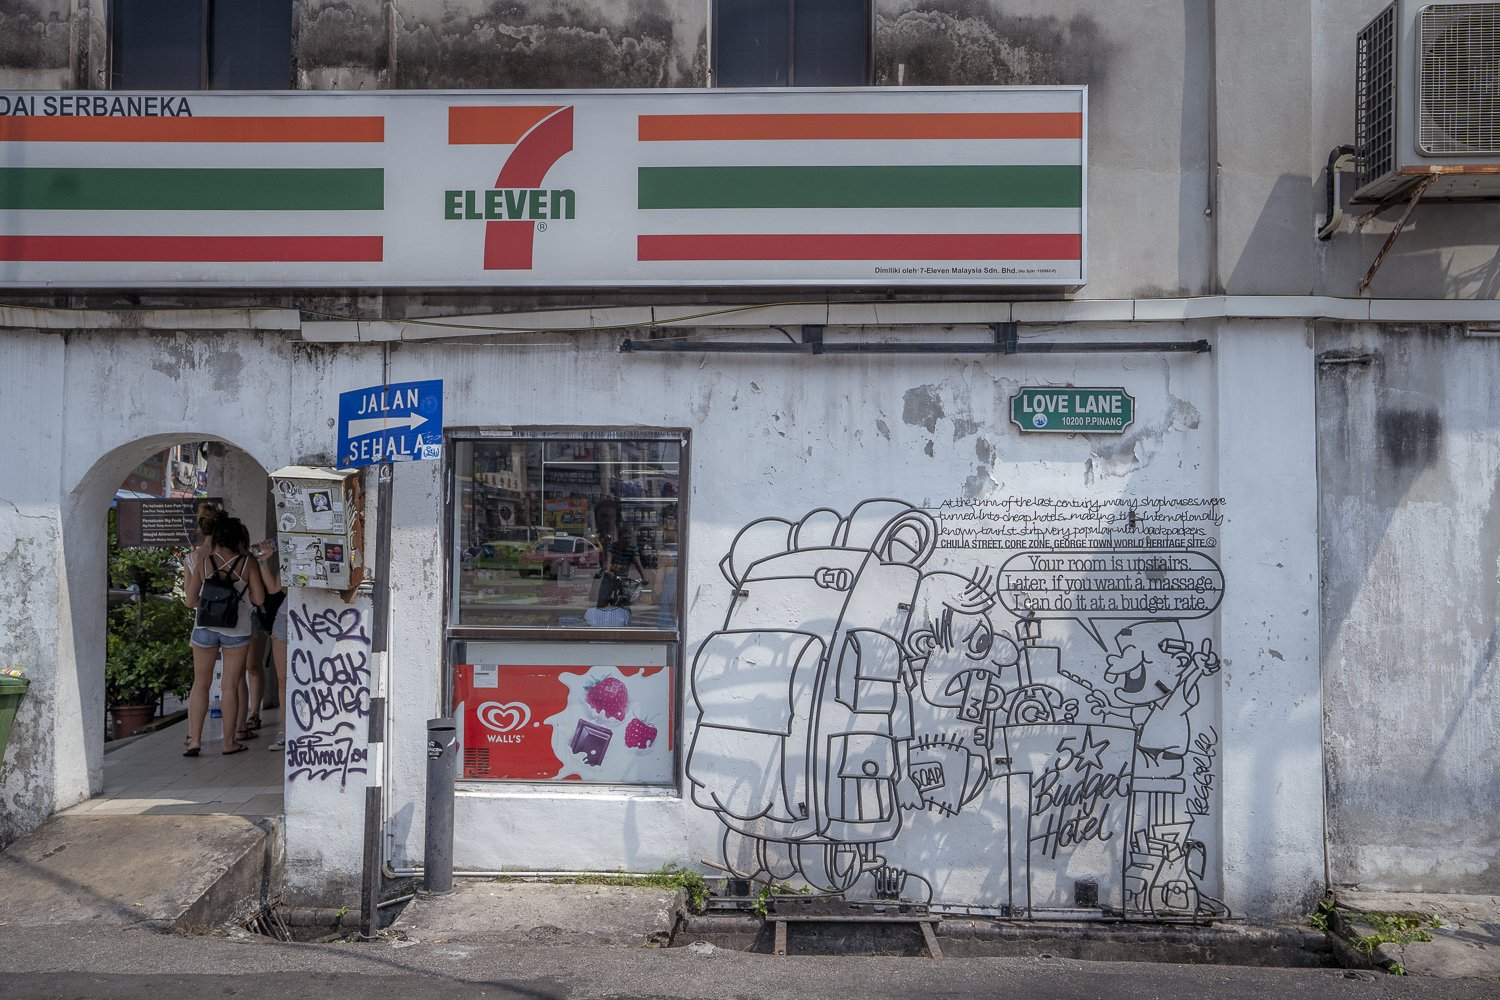 A 7 eleven with wire art work outside